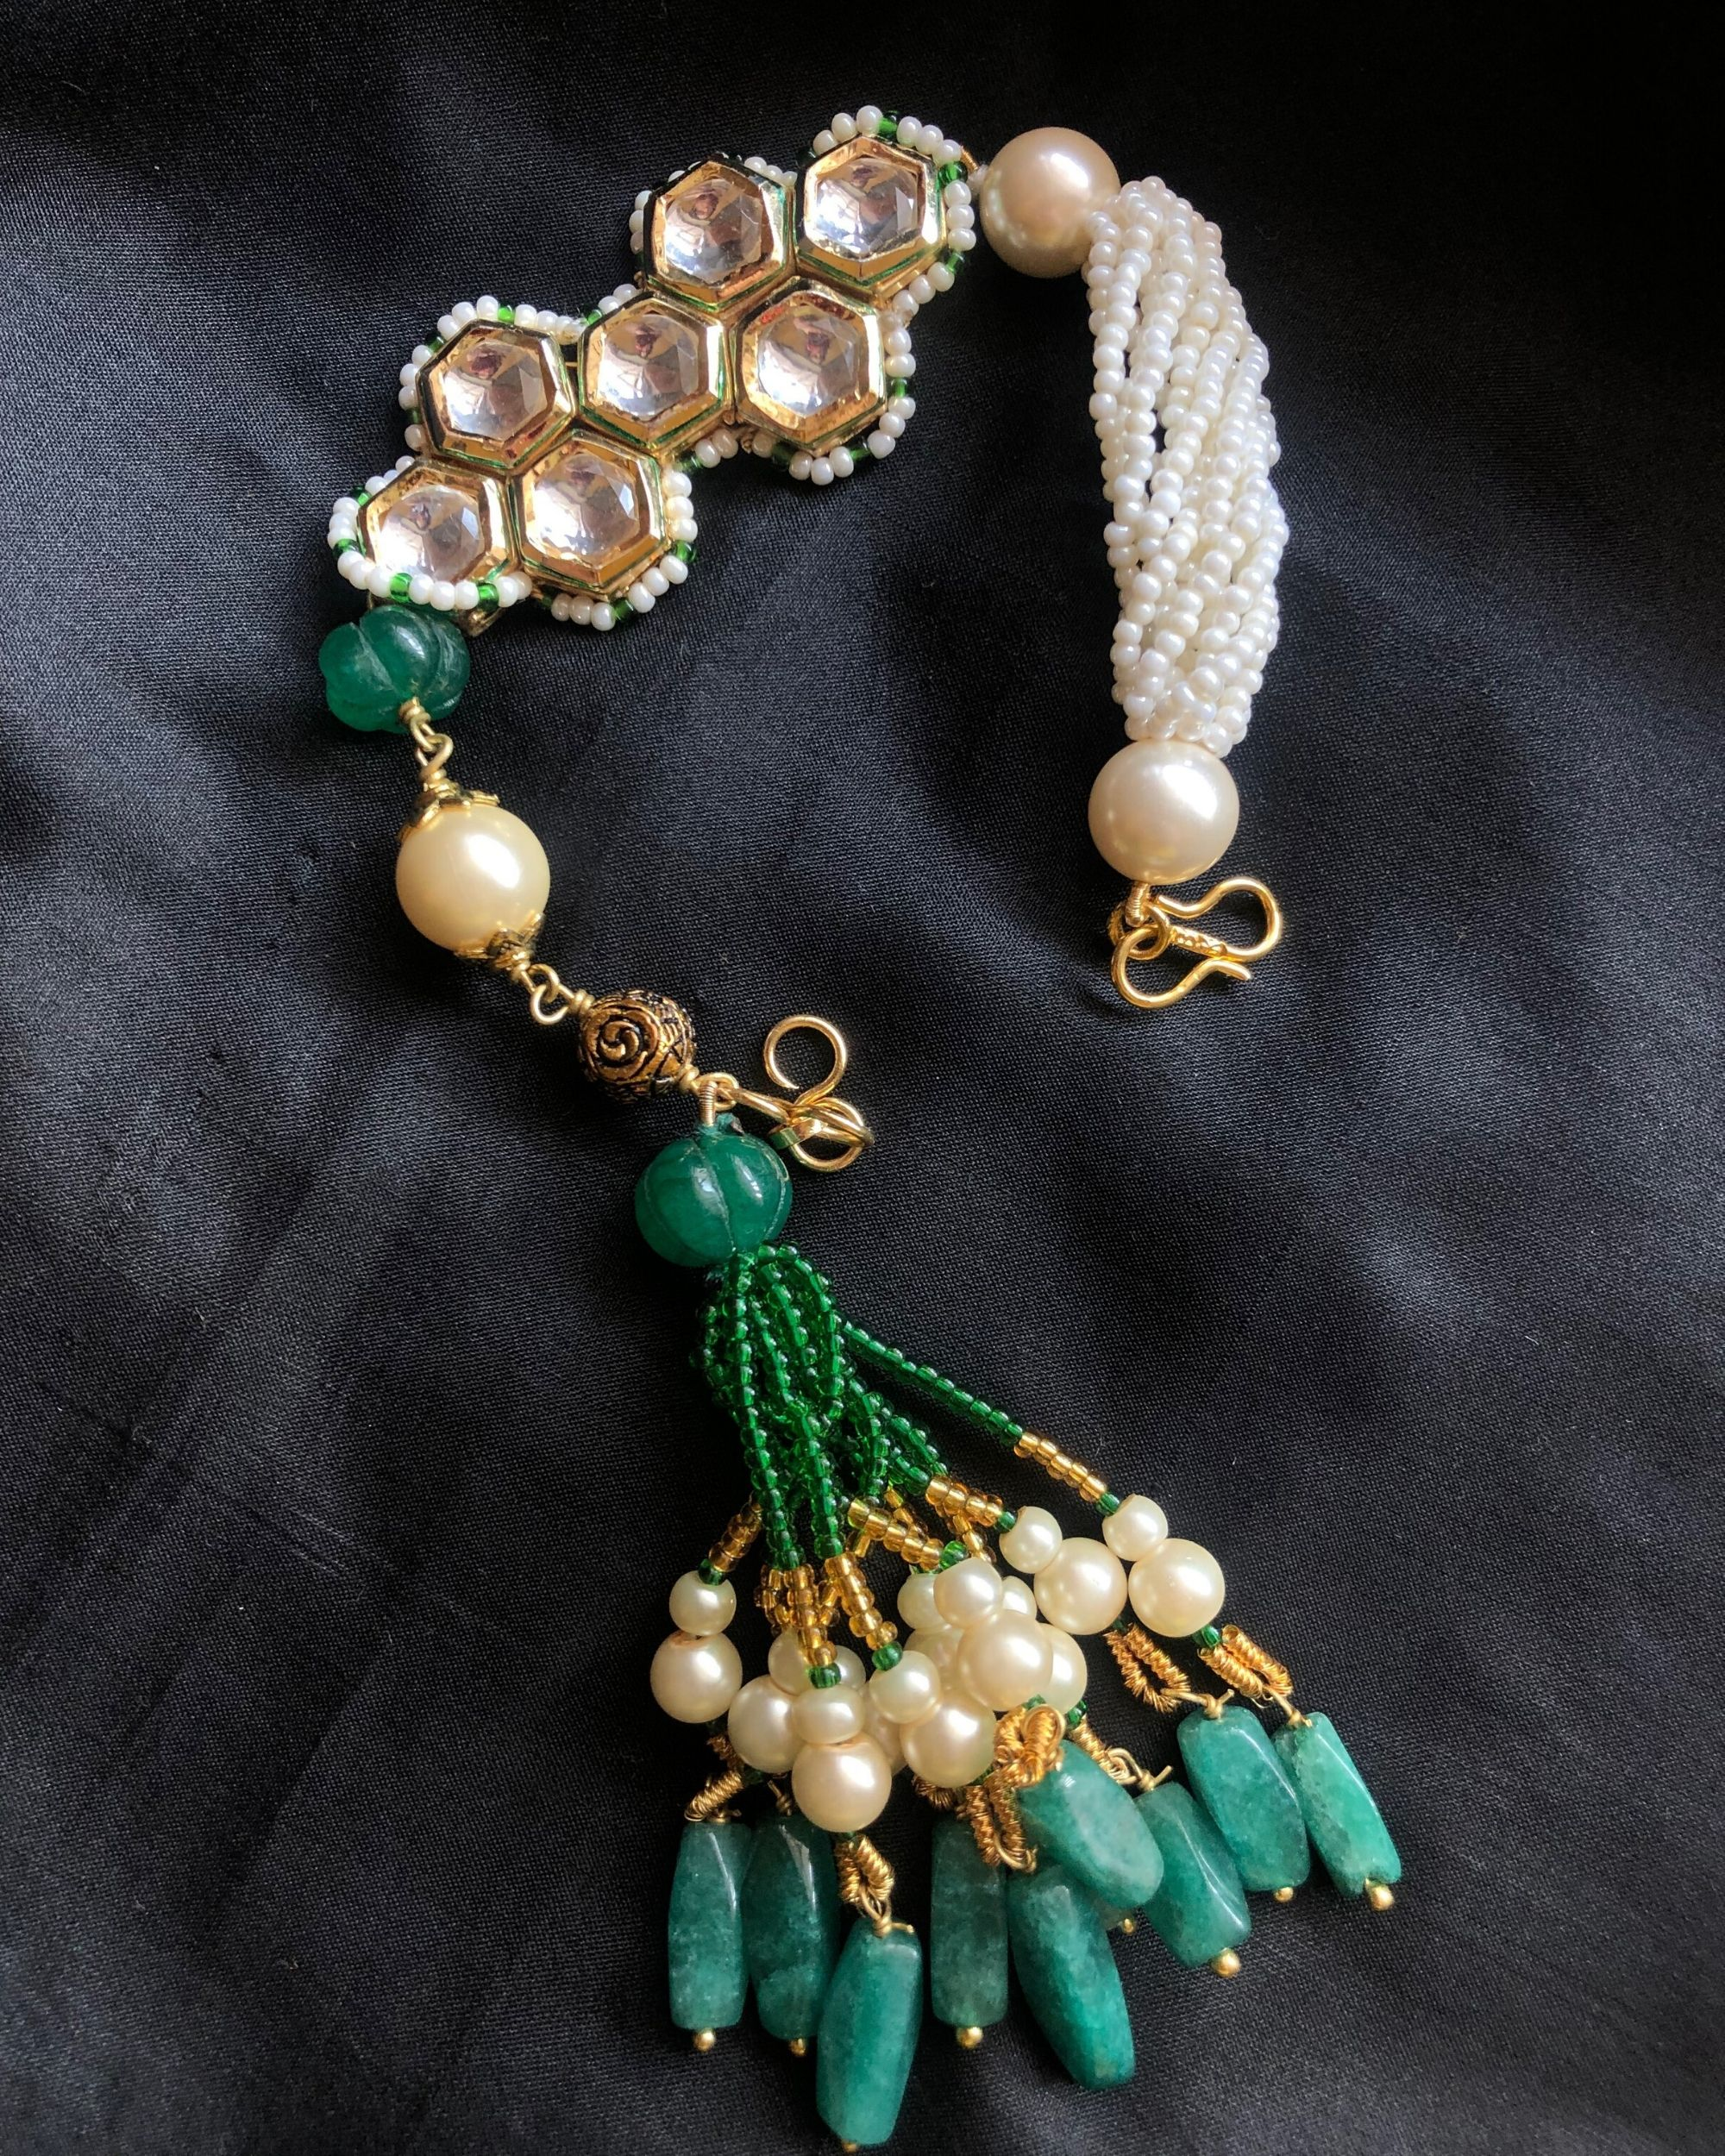 Kundan and pearls bracelet with green stones